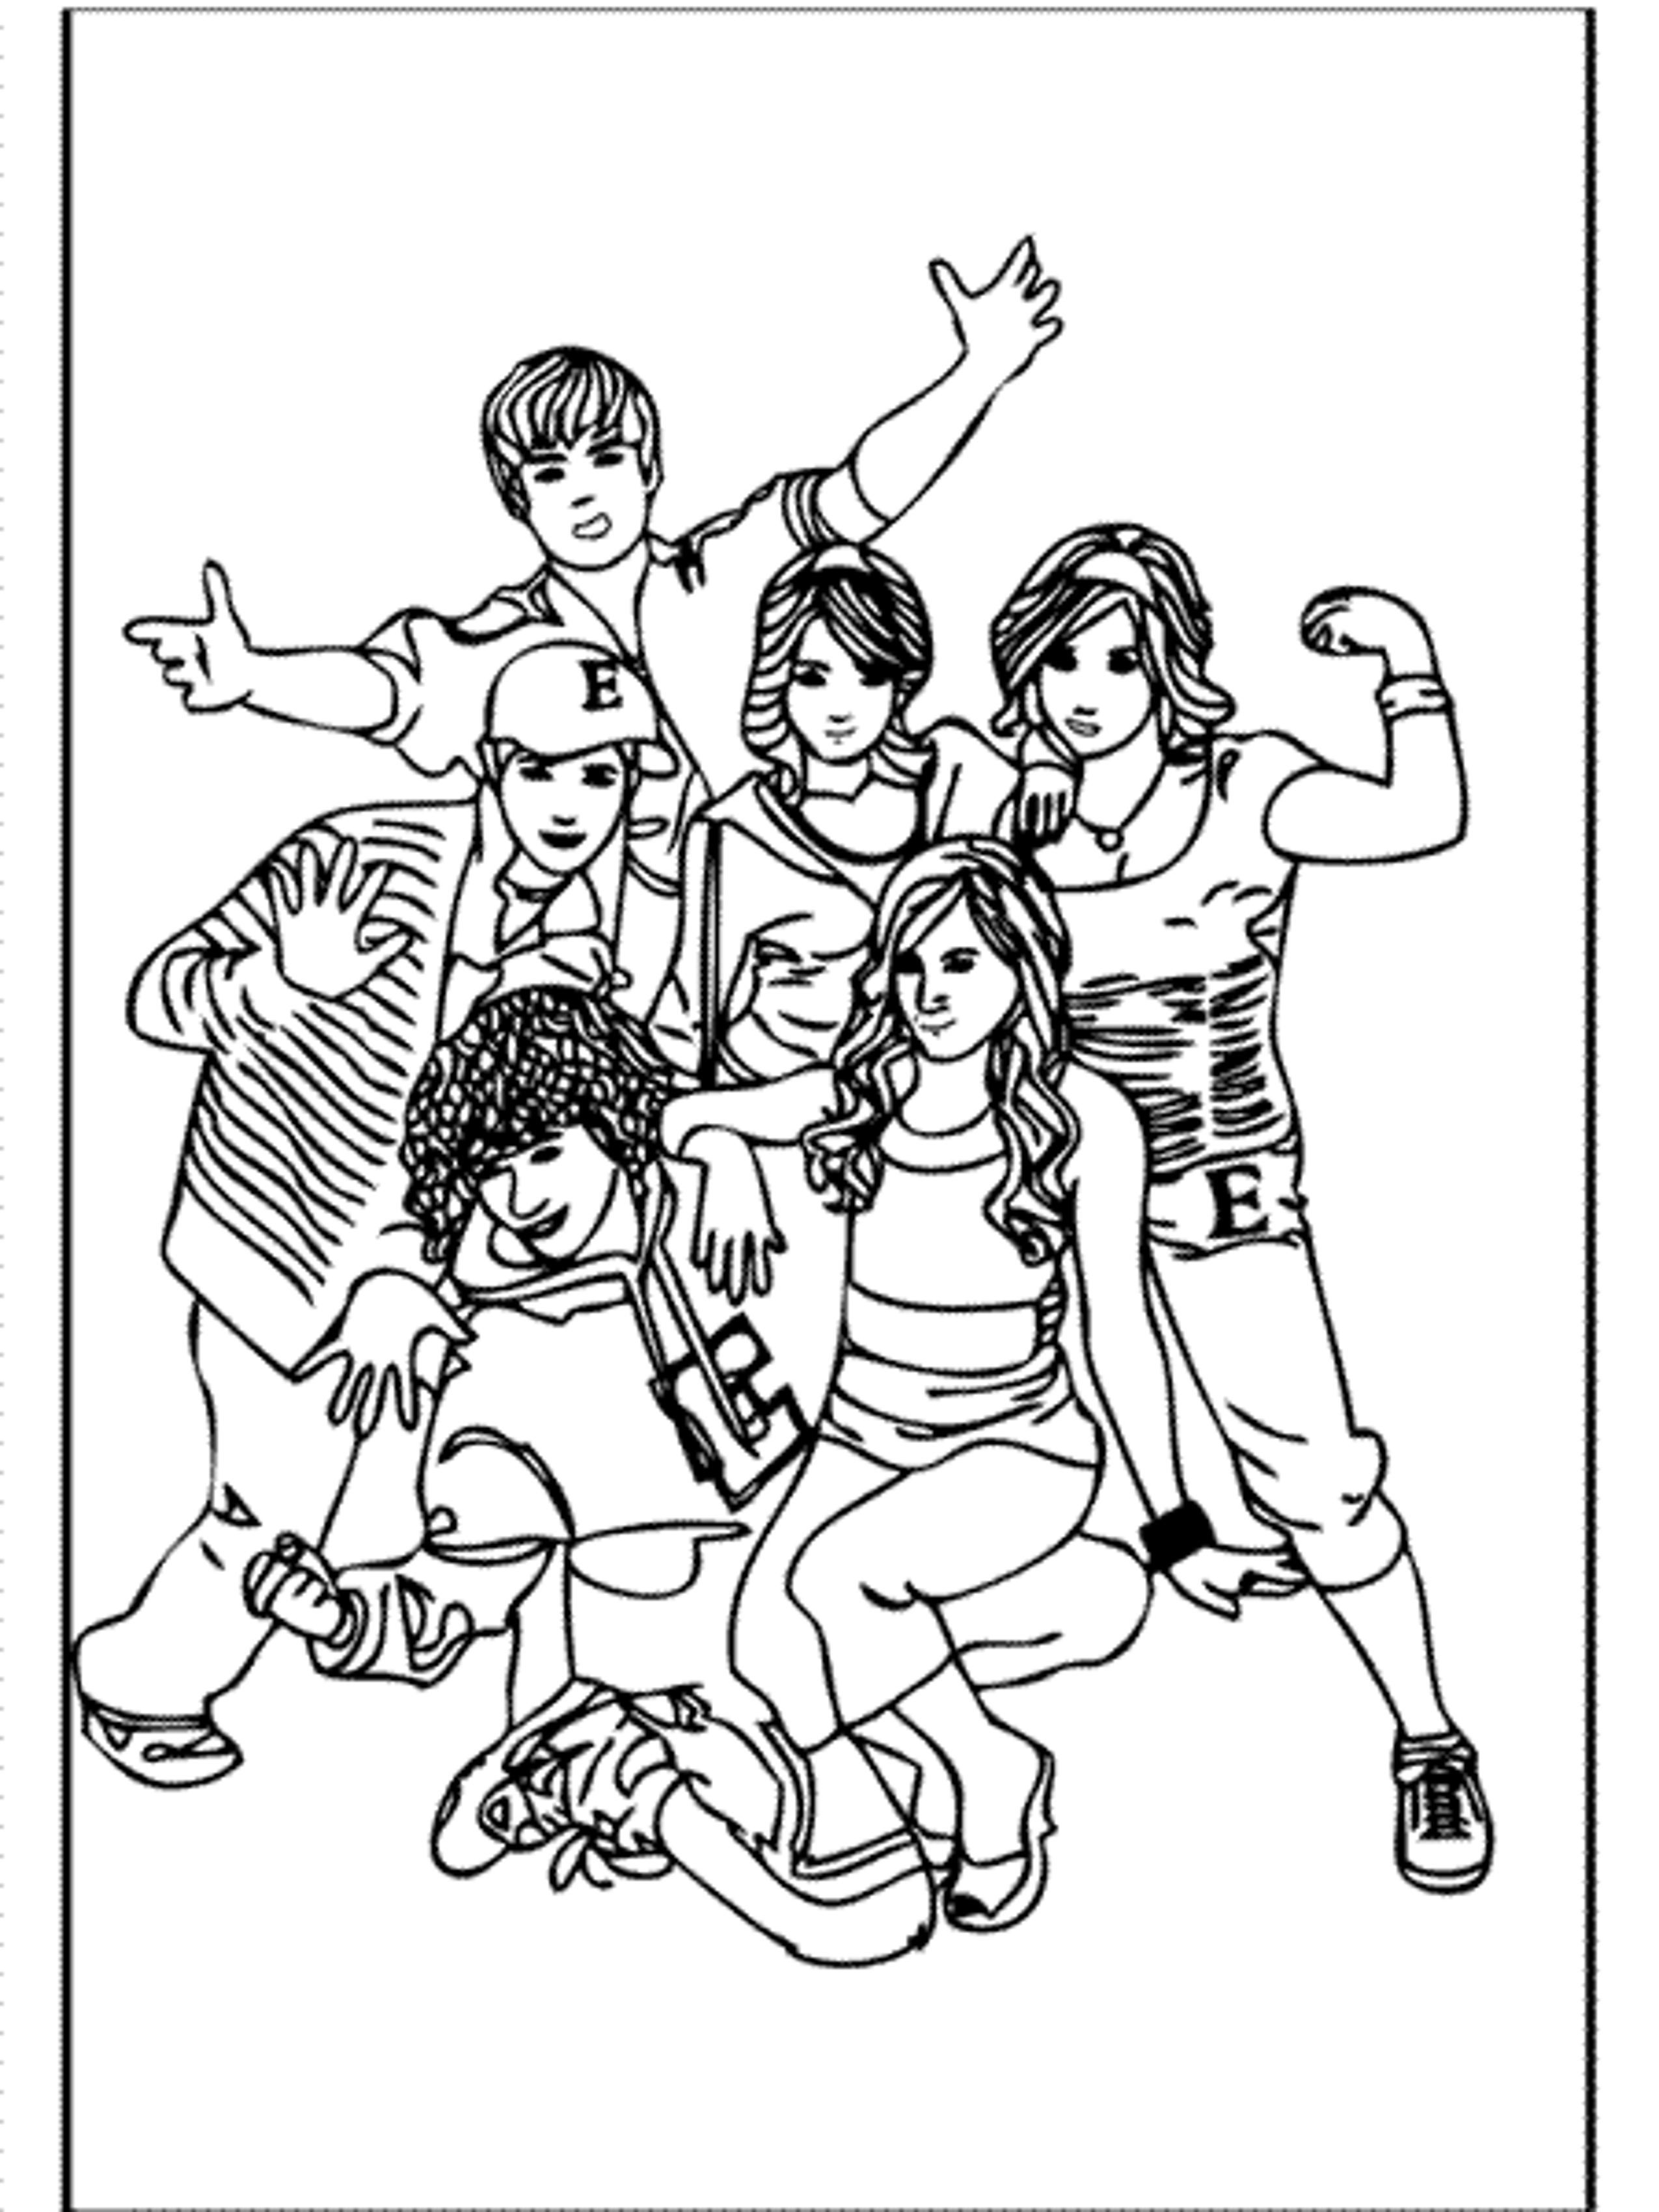 Middle School Coloring Sheets coloring pages middle school az pagesmiddle intended for found ...